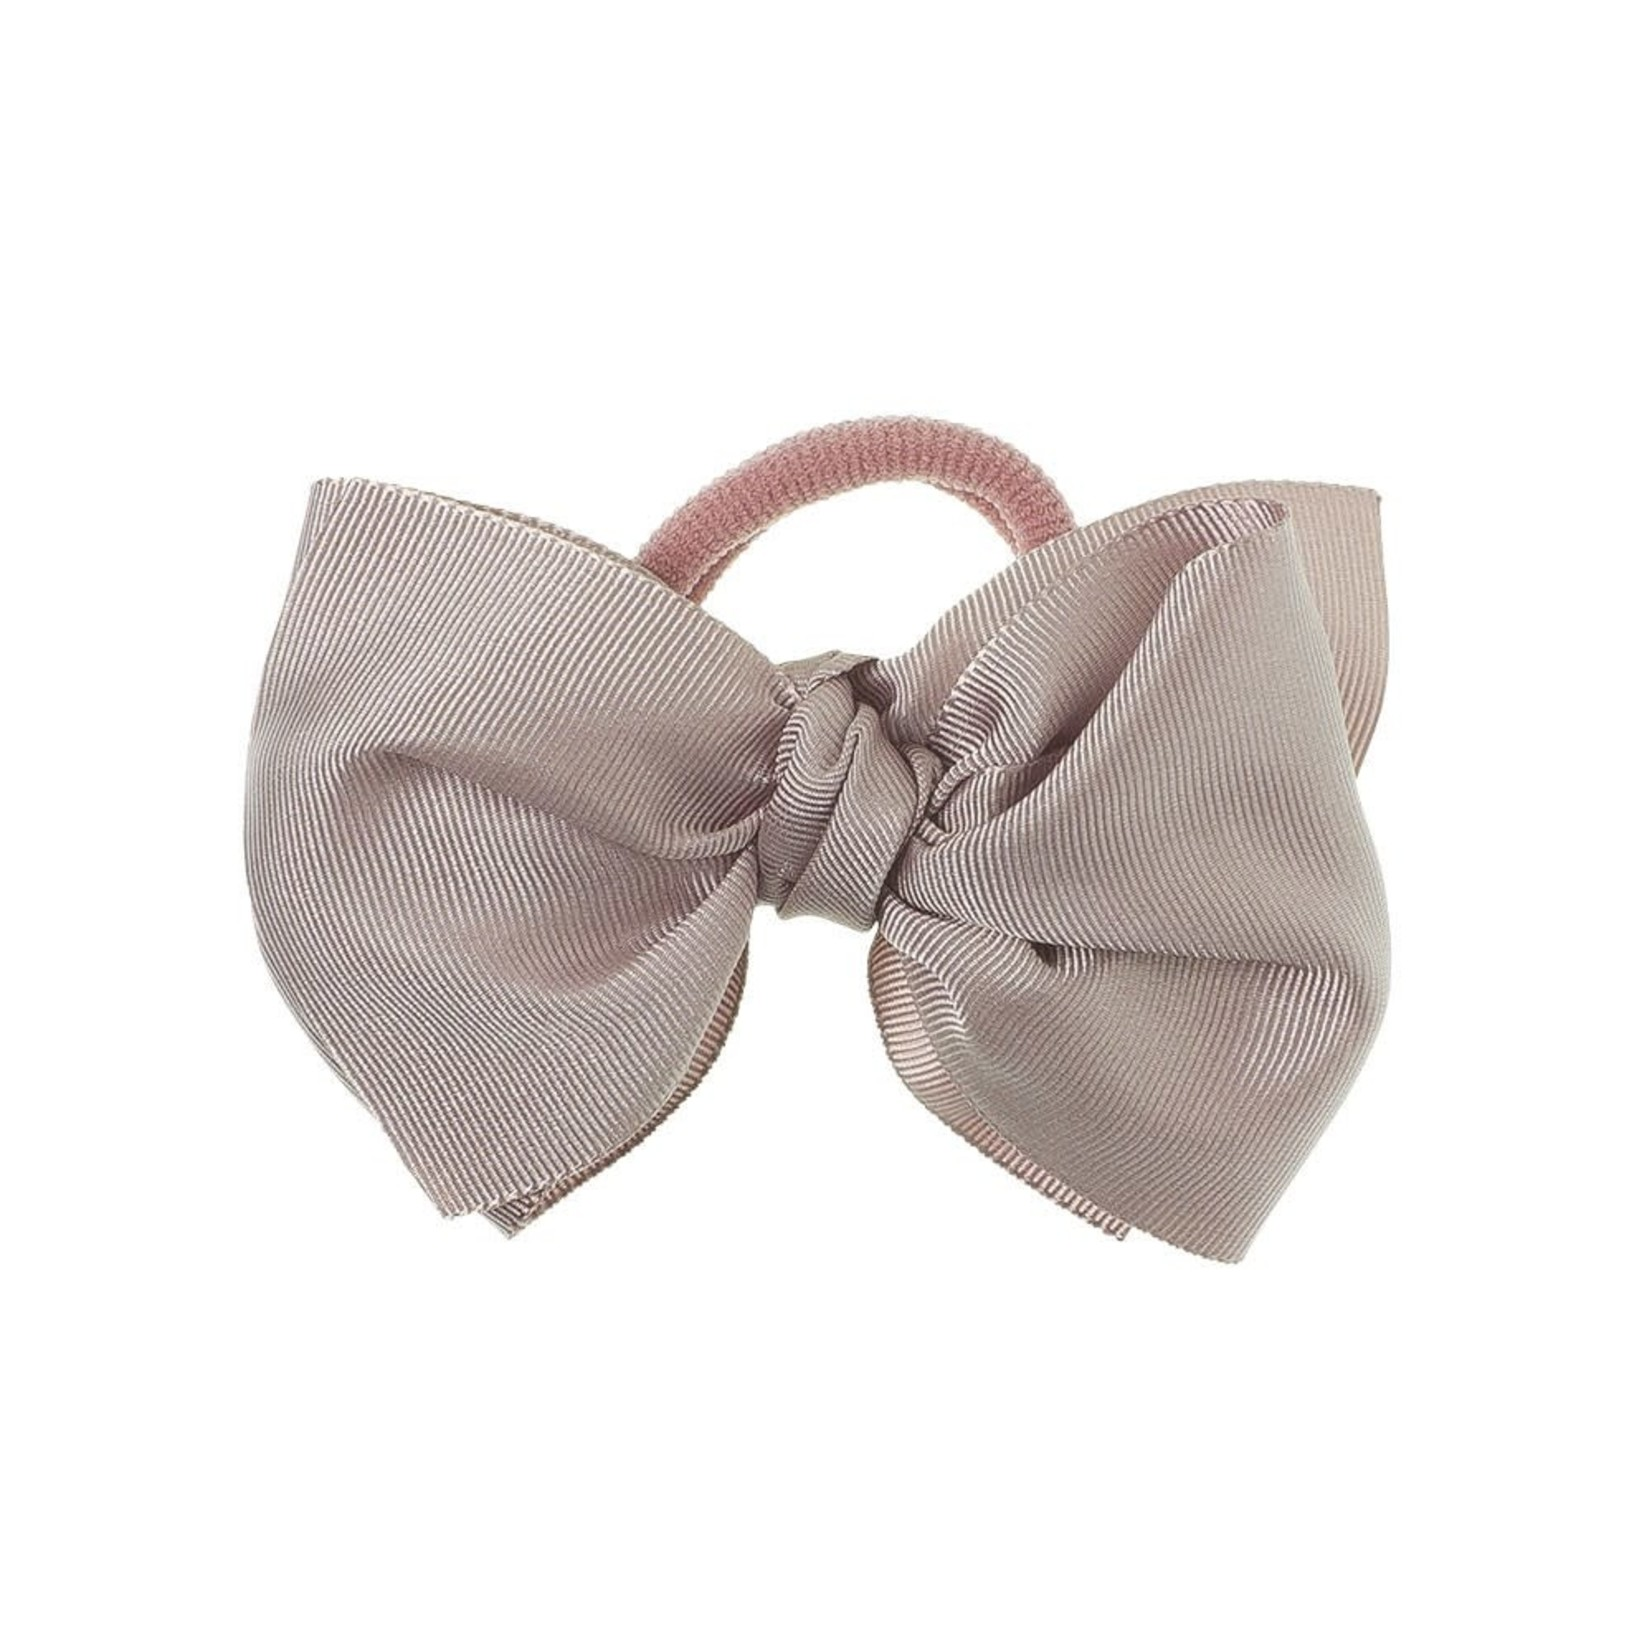 Copy of Hair Bow - Light Pink